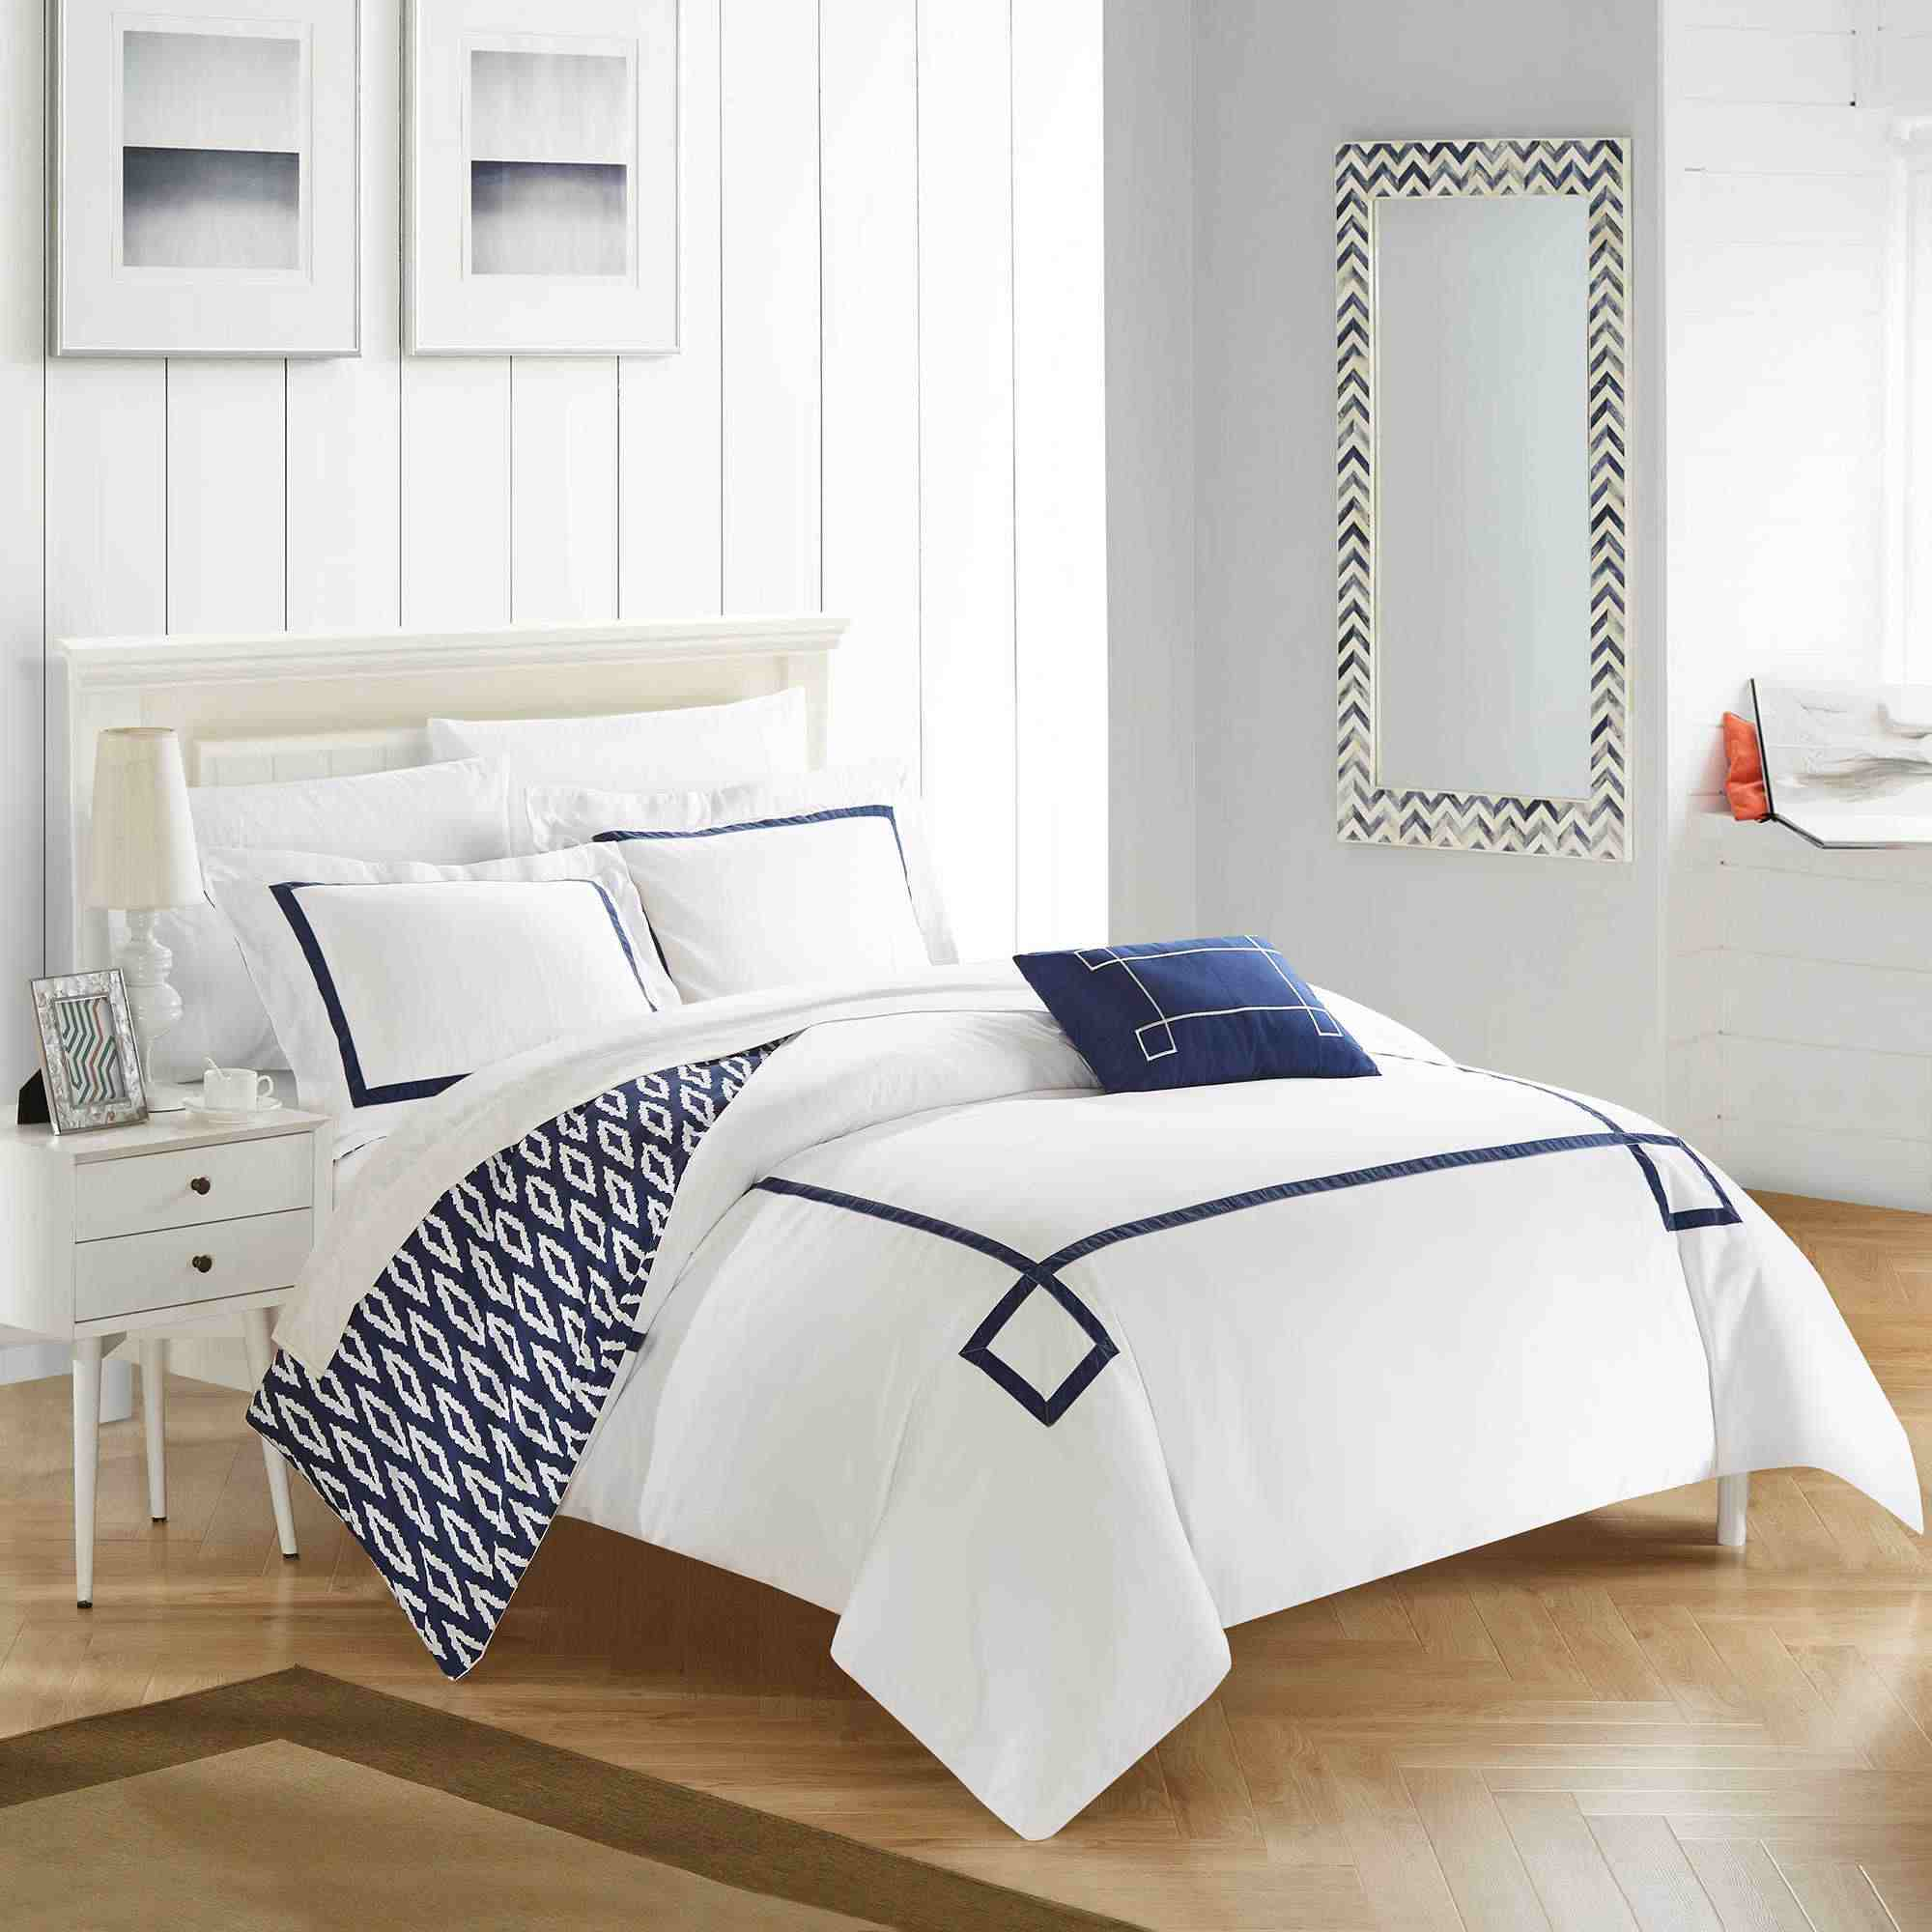 Magnificent The 10 Best Places To Buy Bedding In 2019 Spiritservingveterans Wood Chair Design Ideas Spiritservingveteransorg